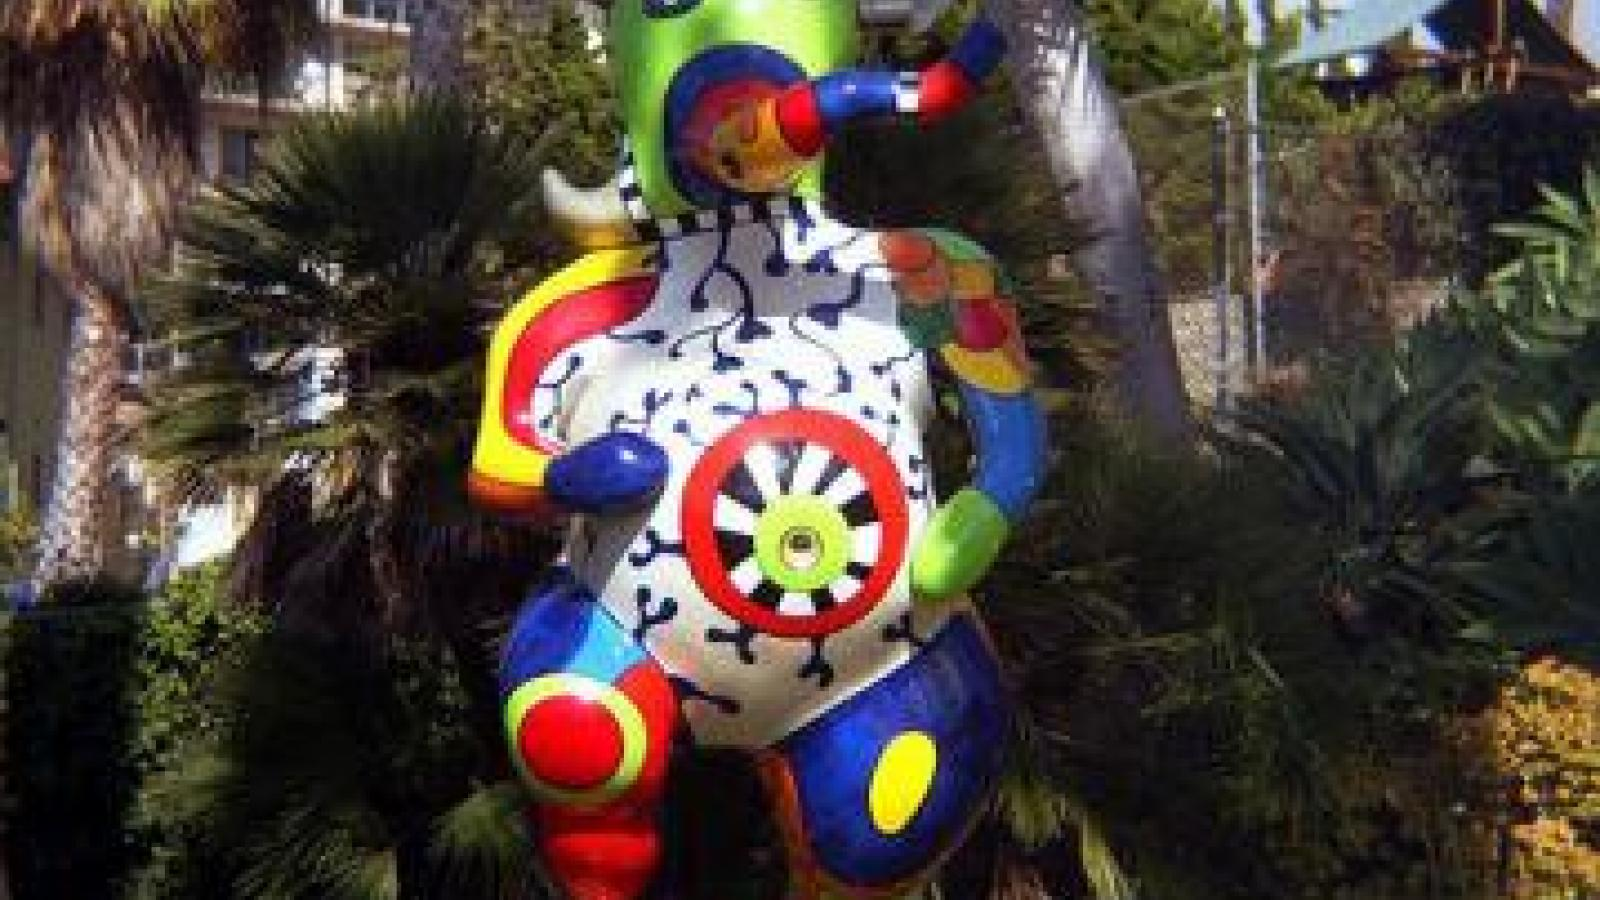 The Nanas of Niki de Saint-Phalle in Saint-Tropez